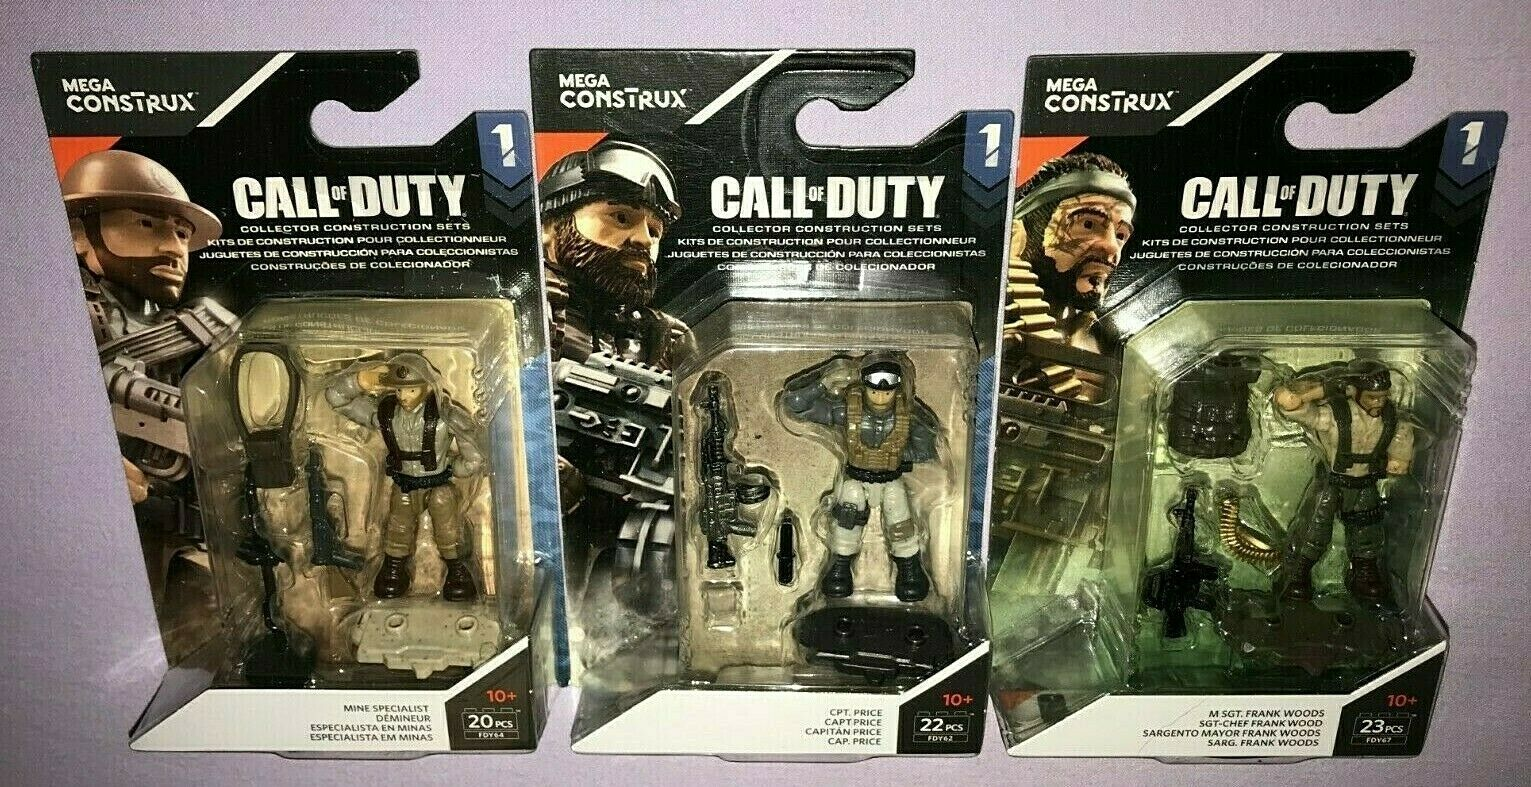 3x MEGA CONSTRUX CALL OF DUTY SERIES 1 MINE SPECIALIST   CPT PRICE   FRANK WOODS